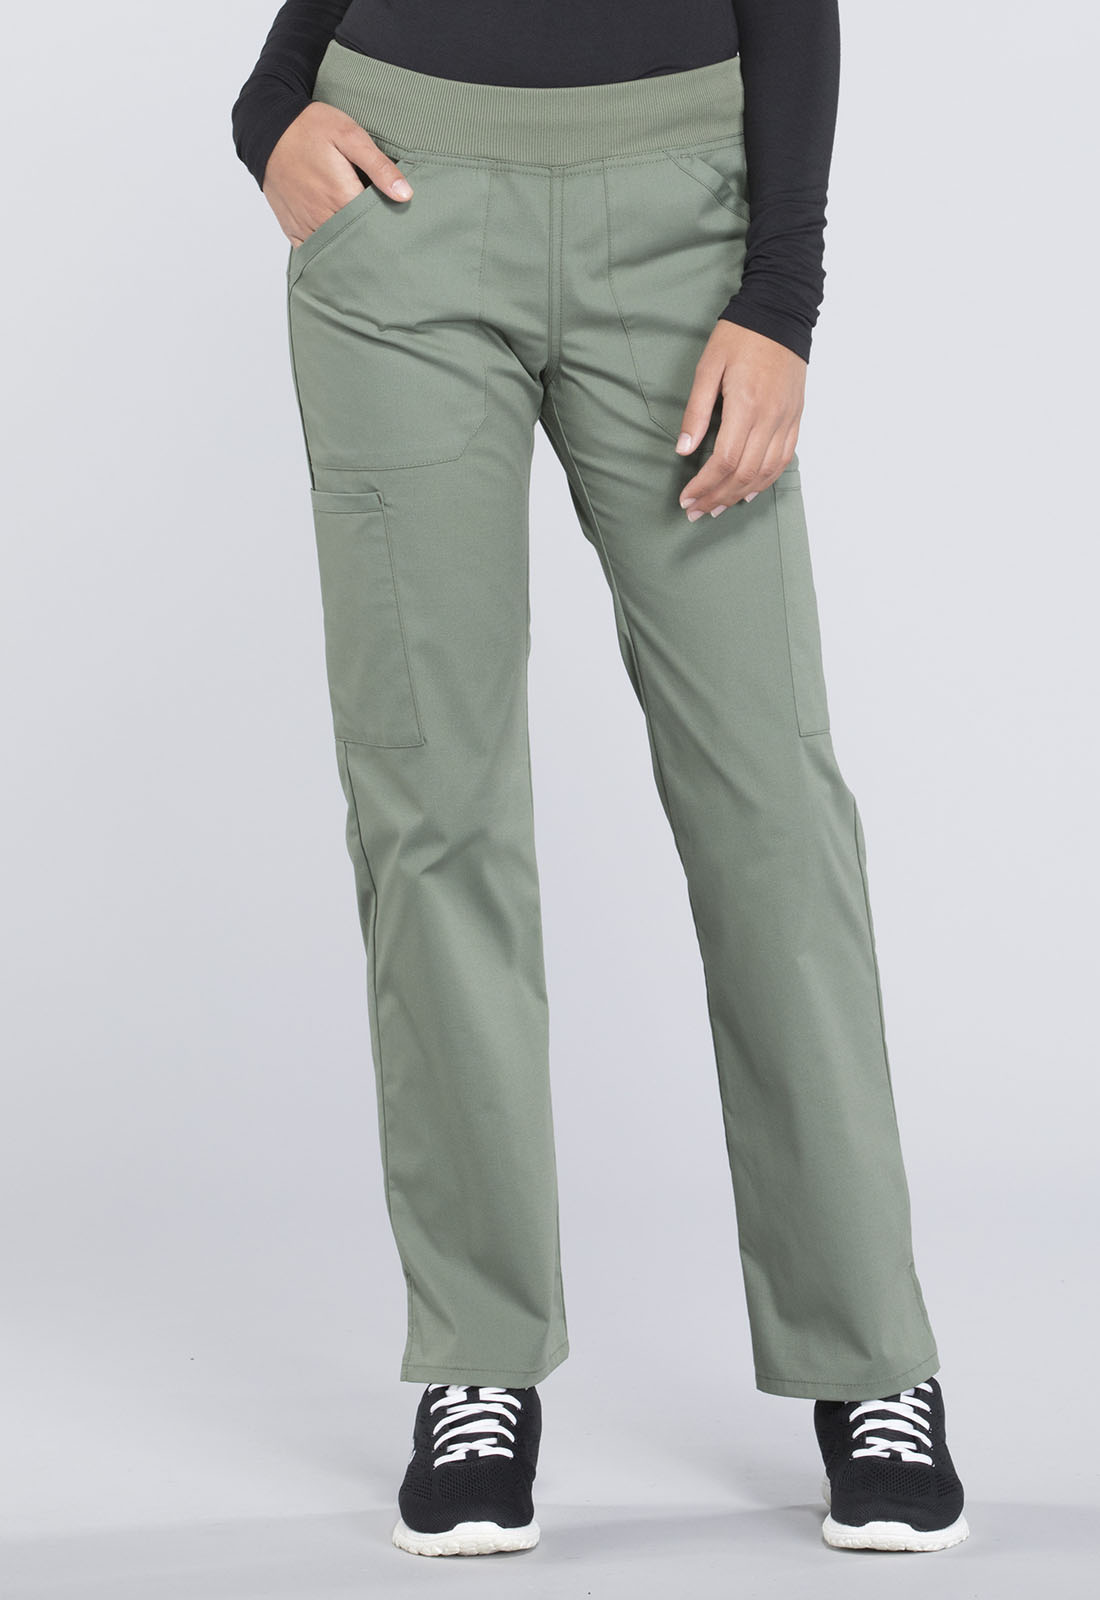 053fb7b3901 Cherokee Workwear. WW Professionals Mid Rise Straight Leg Pull-on Cargo Pant  in Olive (Petite)